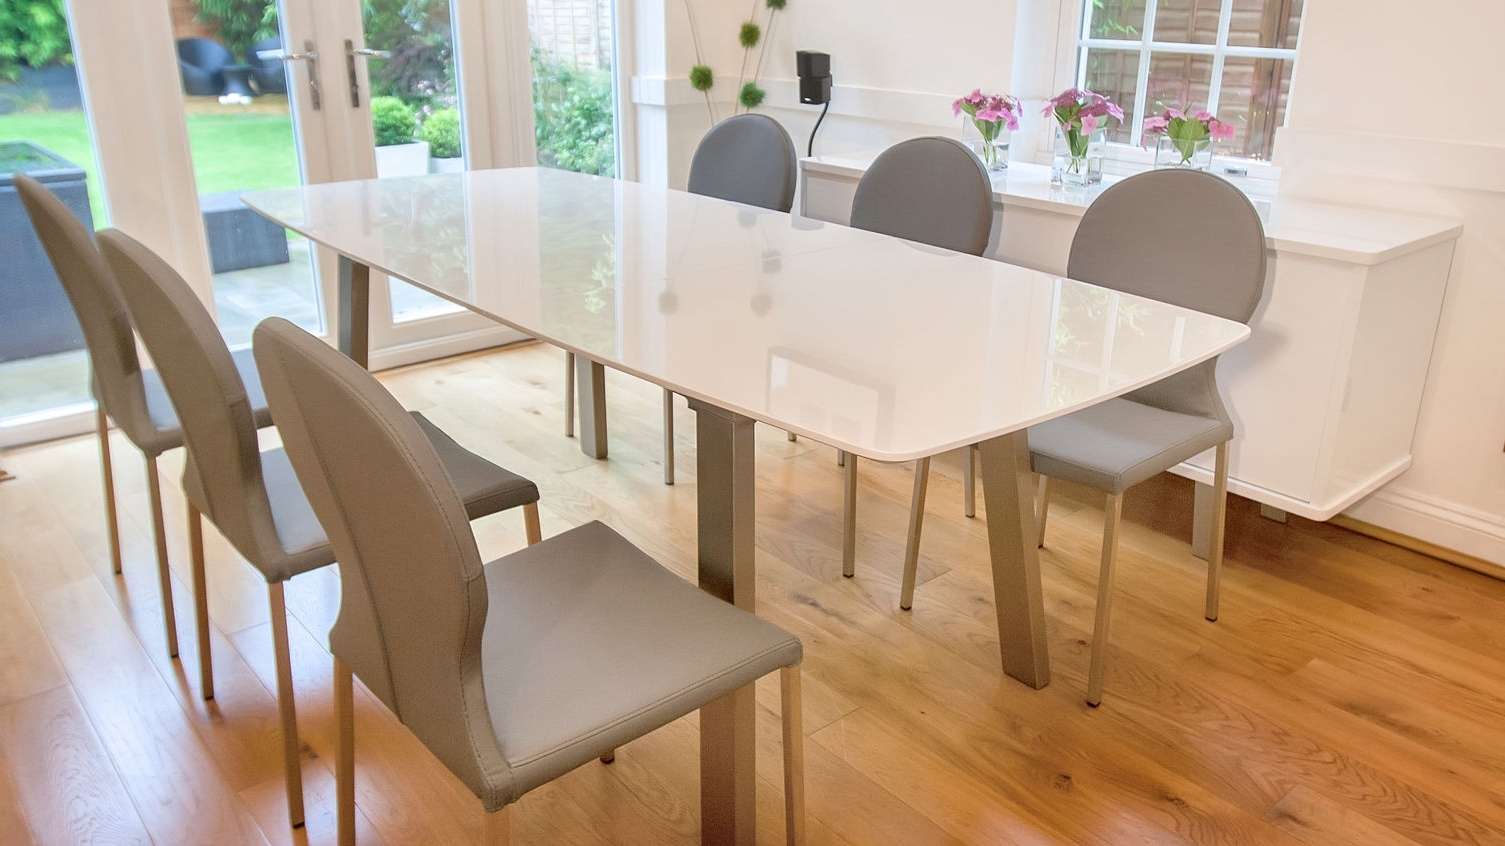 Extending Dining Room Tables And Chairs Dining Room Chair Slipcovers Throughout Well Known White Extendable Dining Tables And Chairs (View 4 of 25)